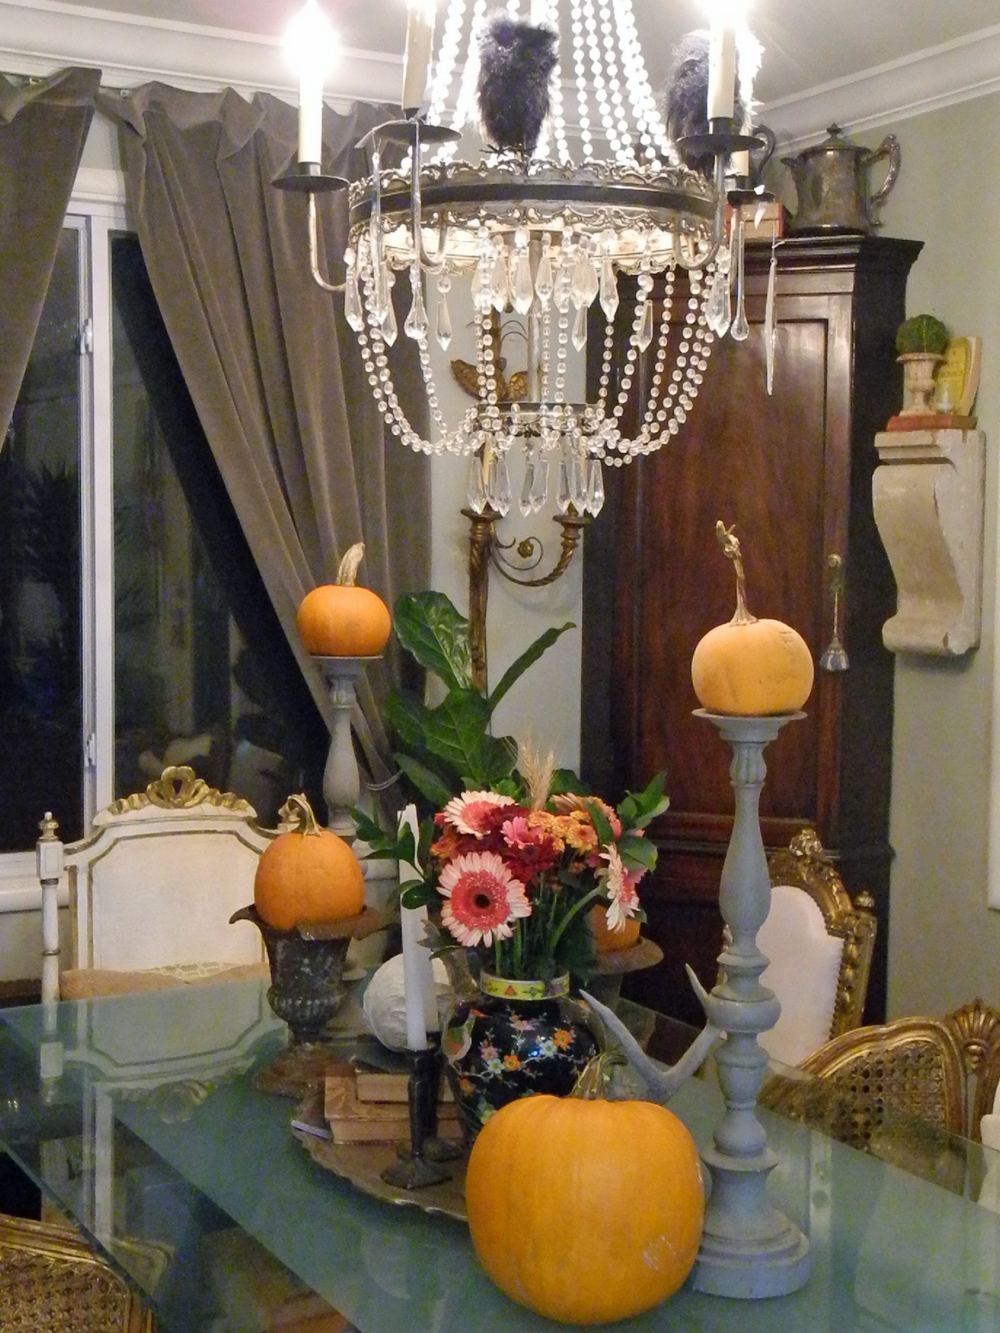 Tabletop pumpkins and antlers.